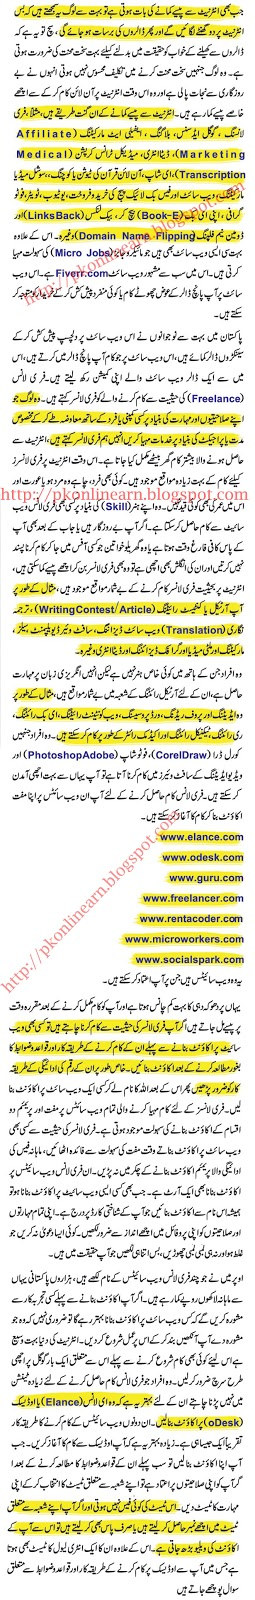 freelance guide in urdu